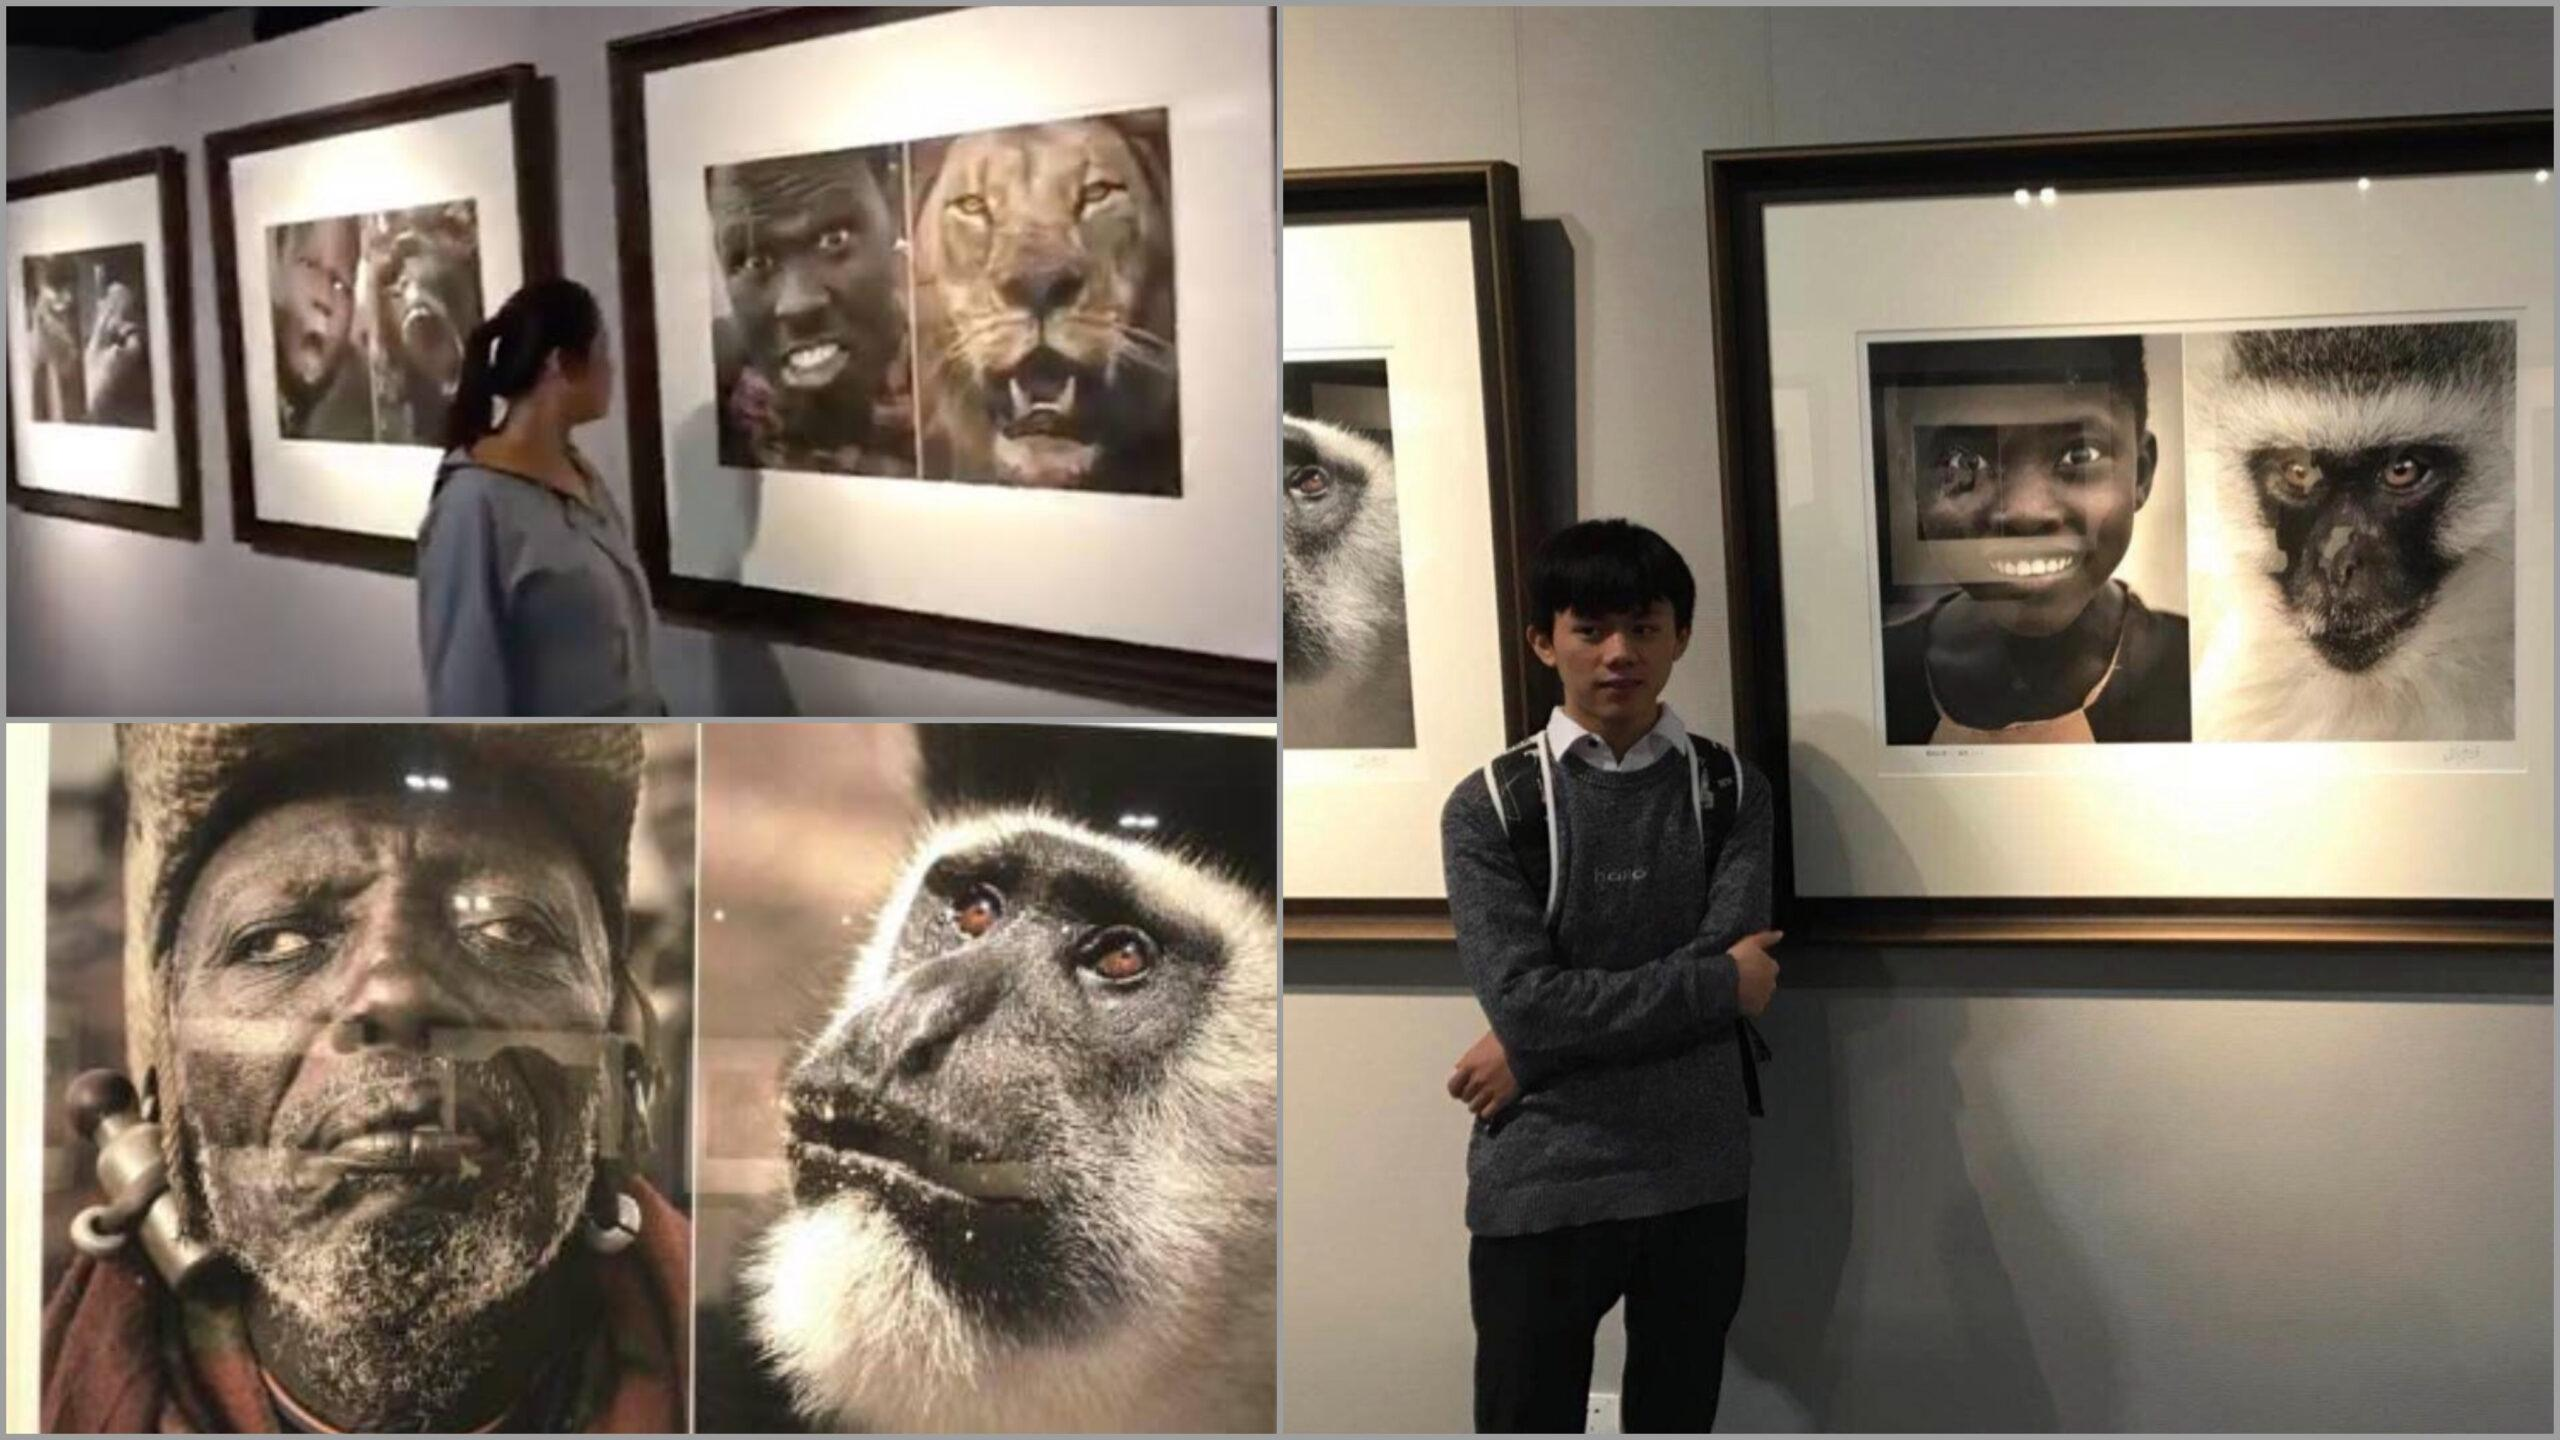 Museum in China that put on an exhibit that compared Africans to animals